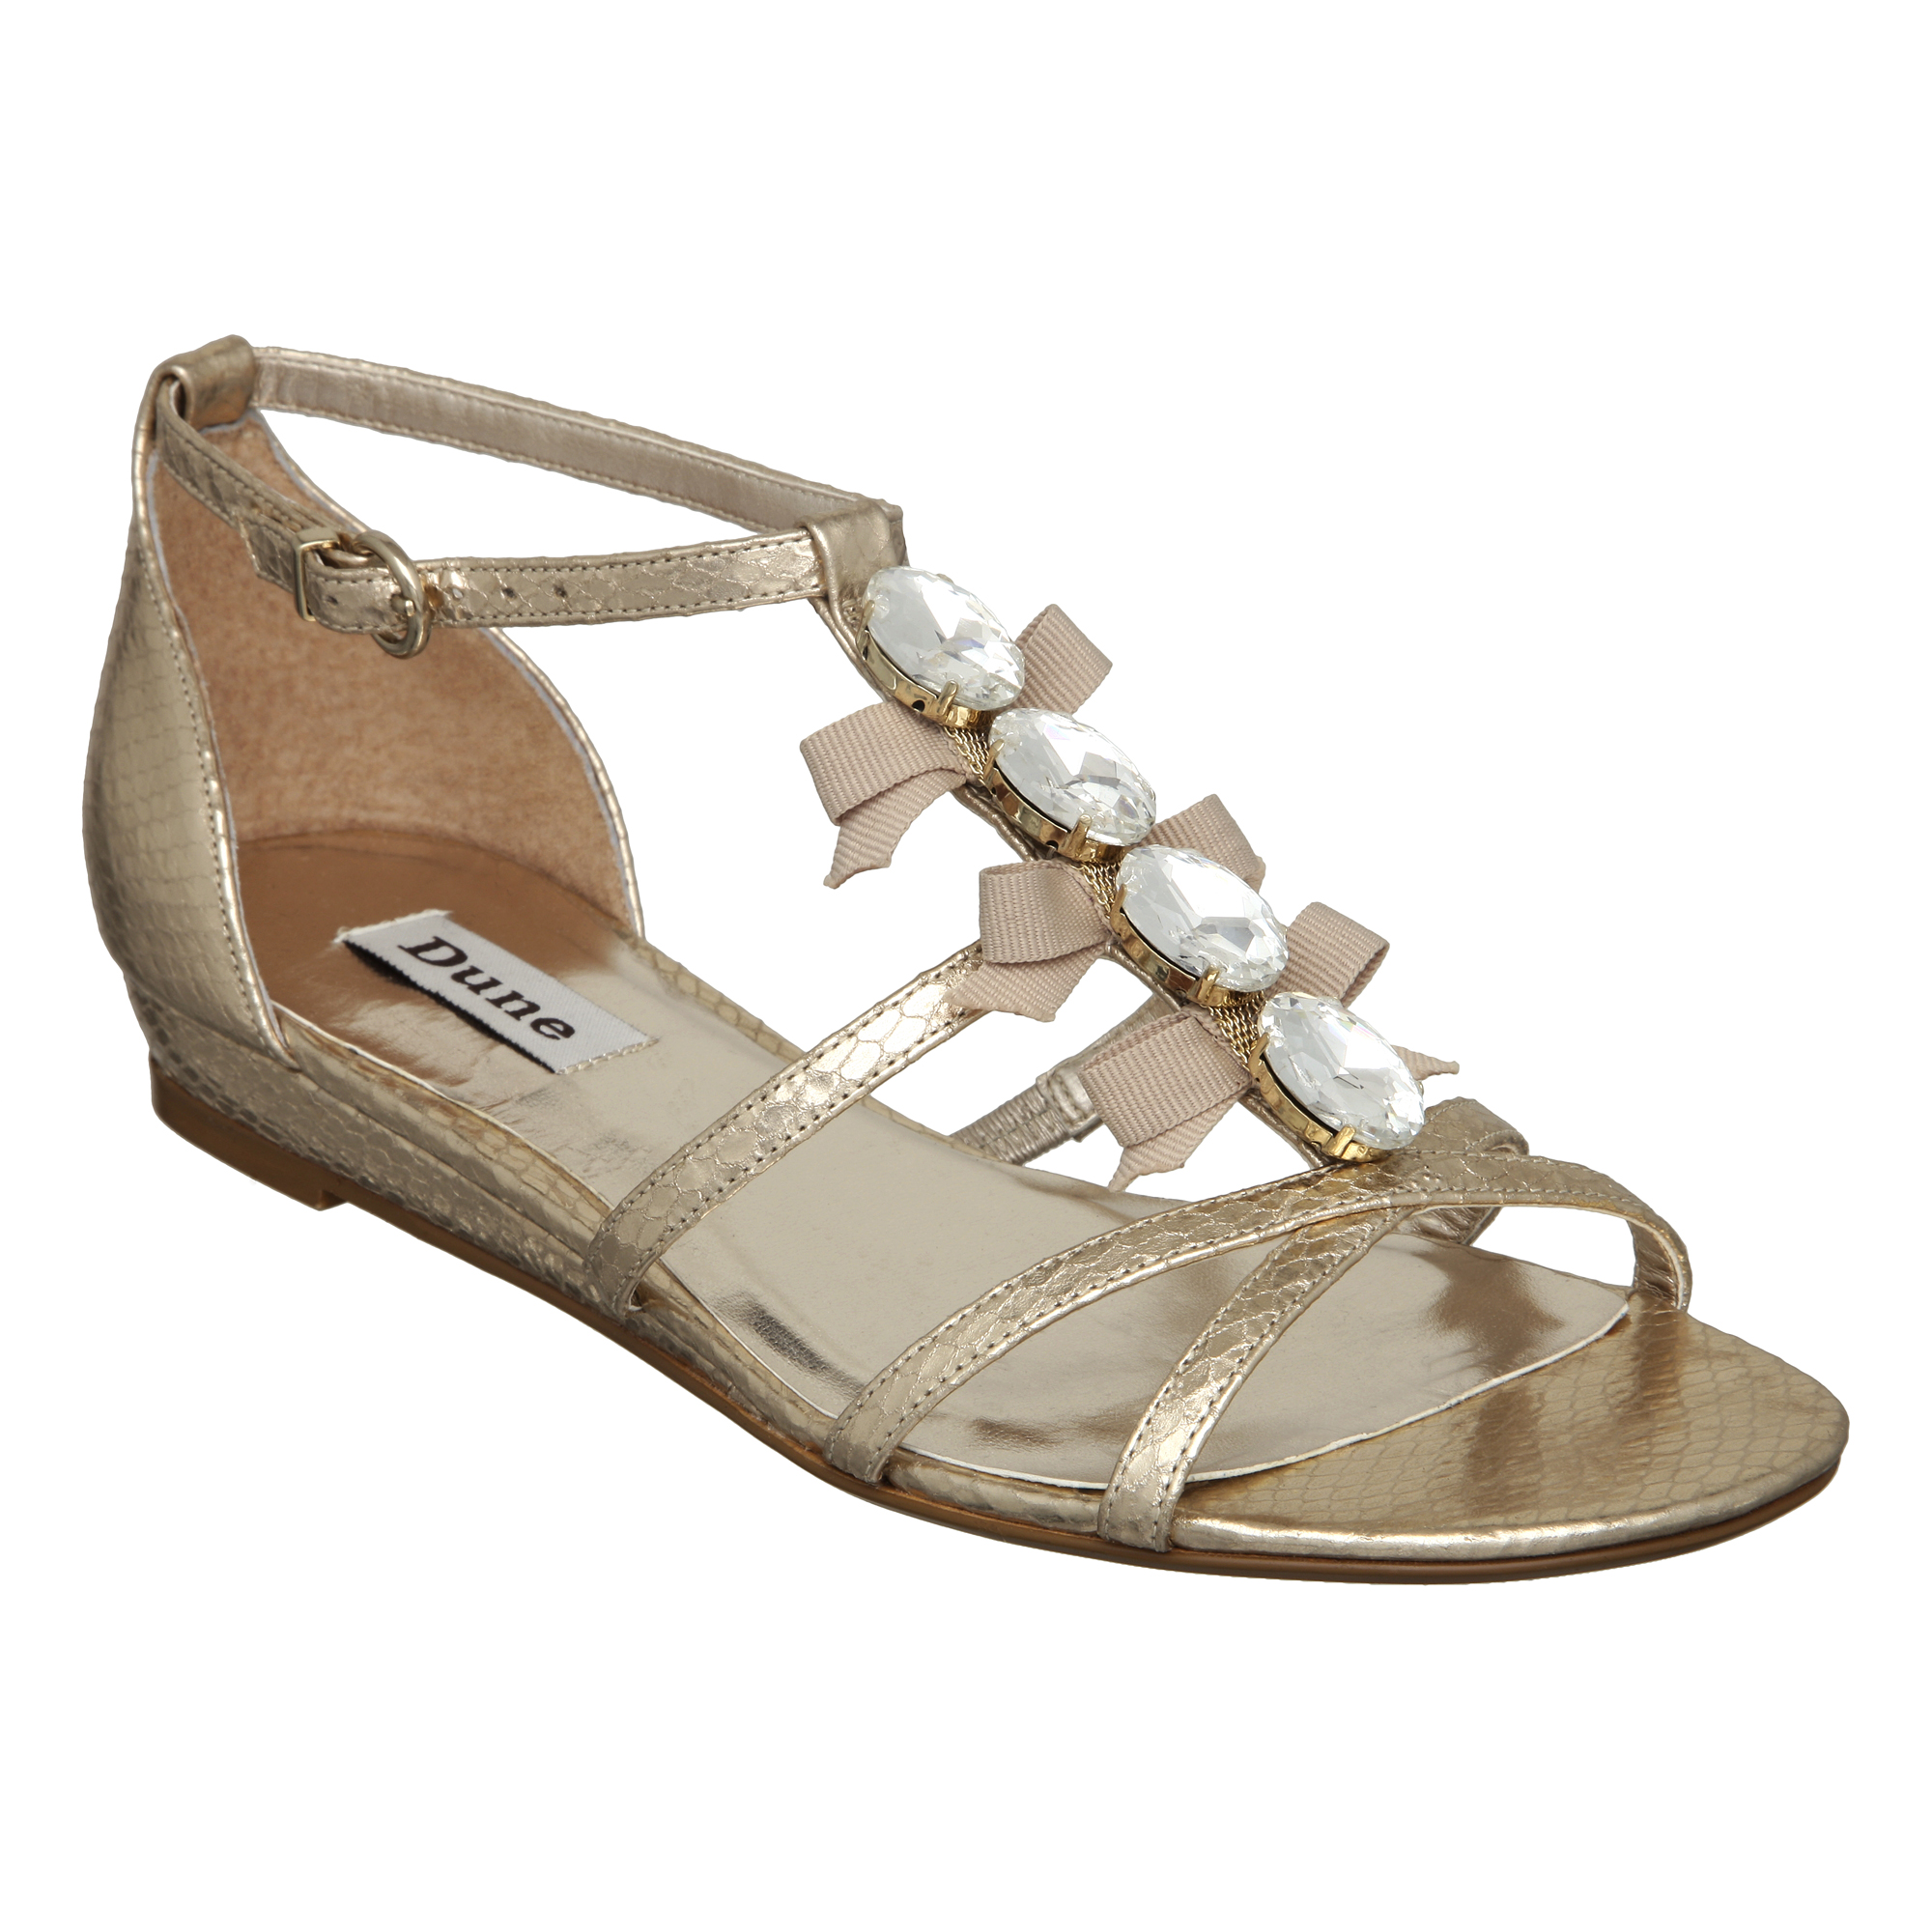 NEW-DUNE-WOMENS-KAISIE-CHAMPAGNE-GOLD-DIAMANTE-LADIES-BOW-SANDALS-SHOES-SIZE-3-8